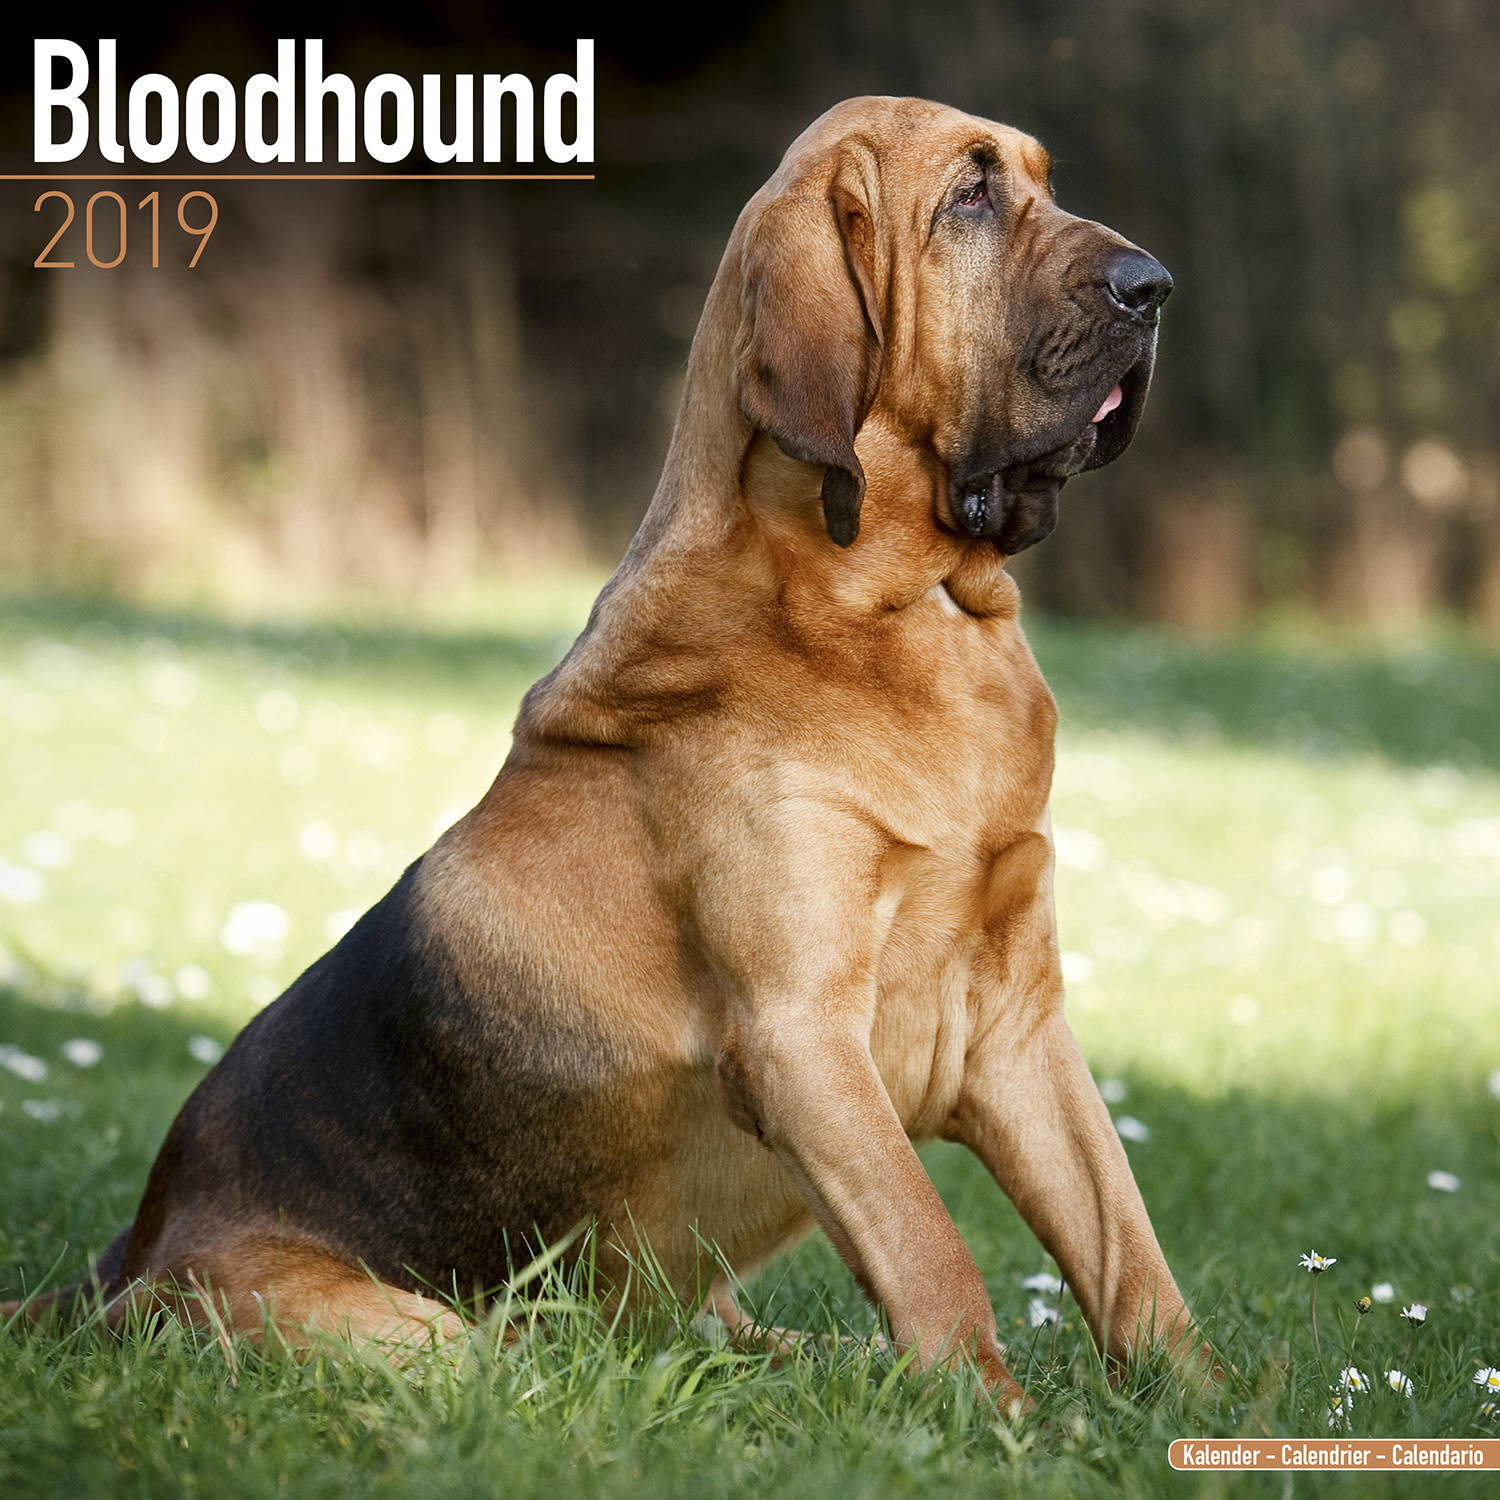 Bloodhound Calendar Dog Breed Calendars Megacalendars